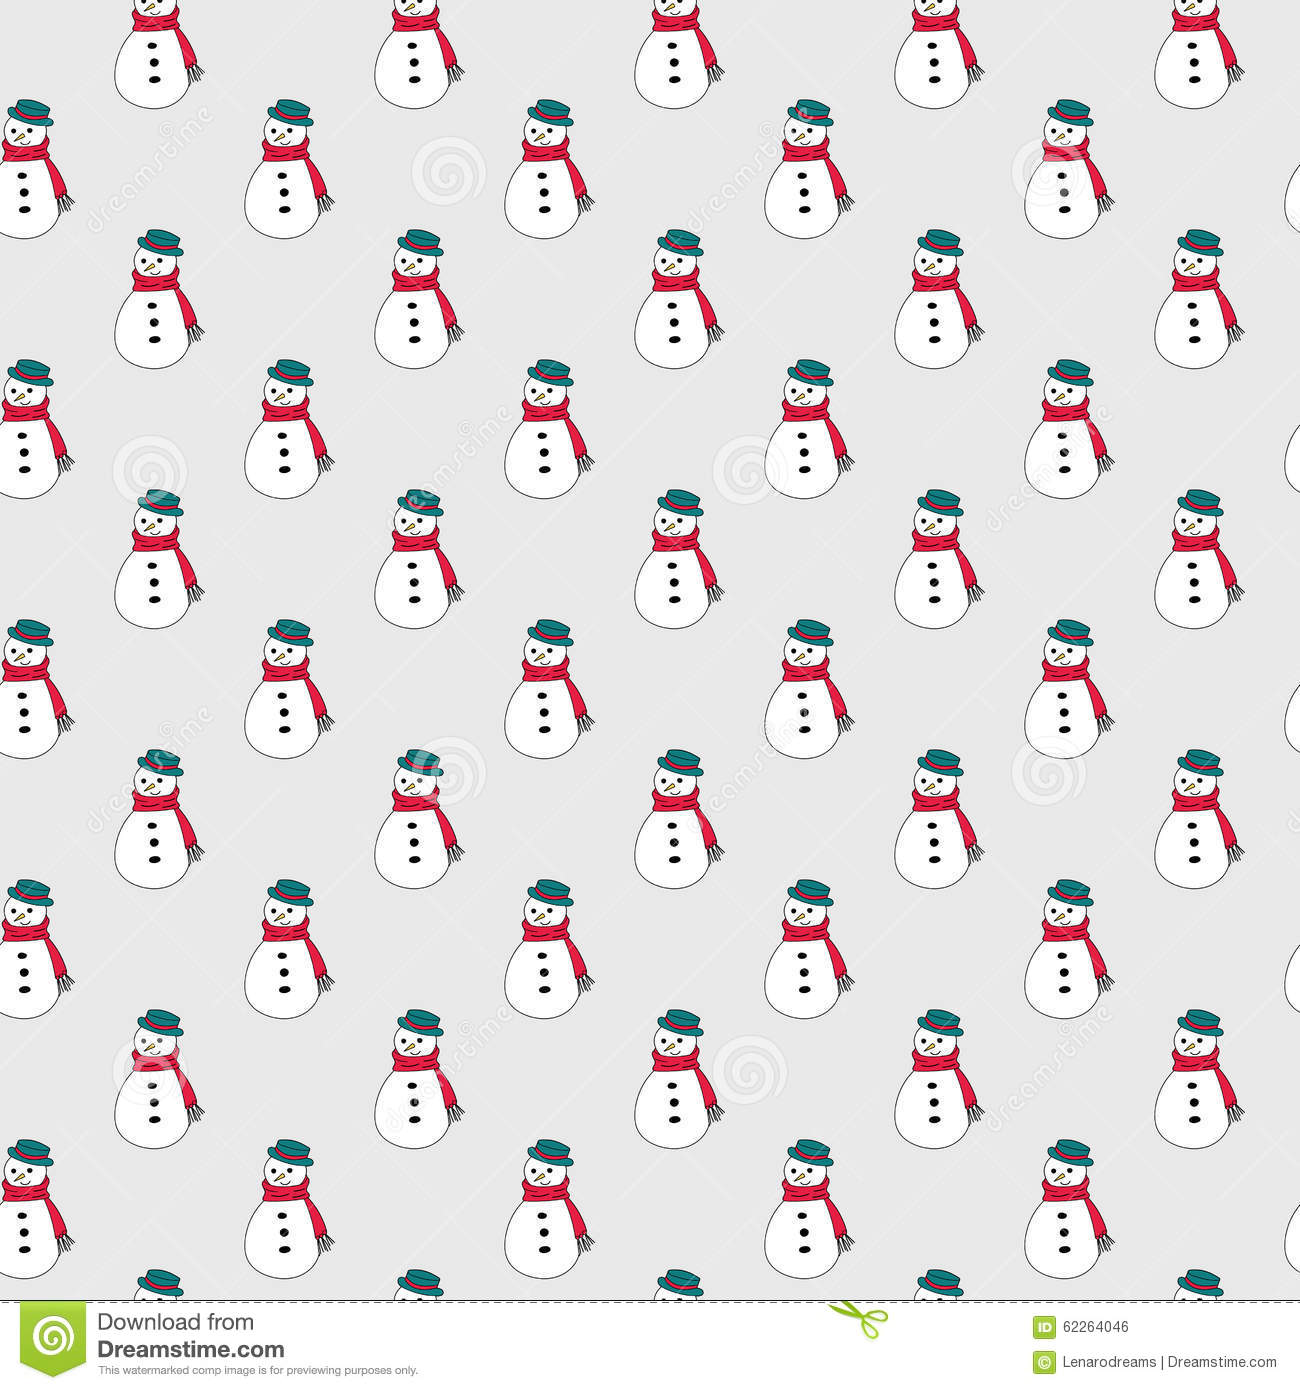 Cute Simple Snowman For Postcard And Poster Graphic Design Textile Wrapping Paper Hand Drawn Style Christmas Winter Backgrounds